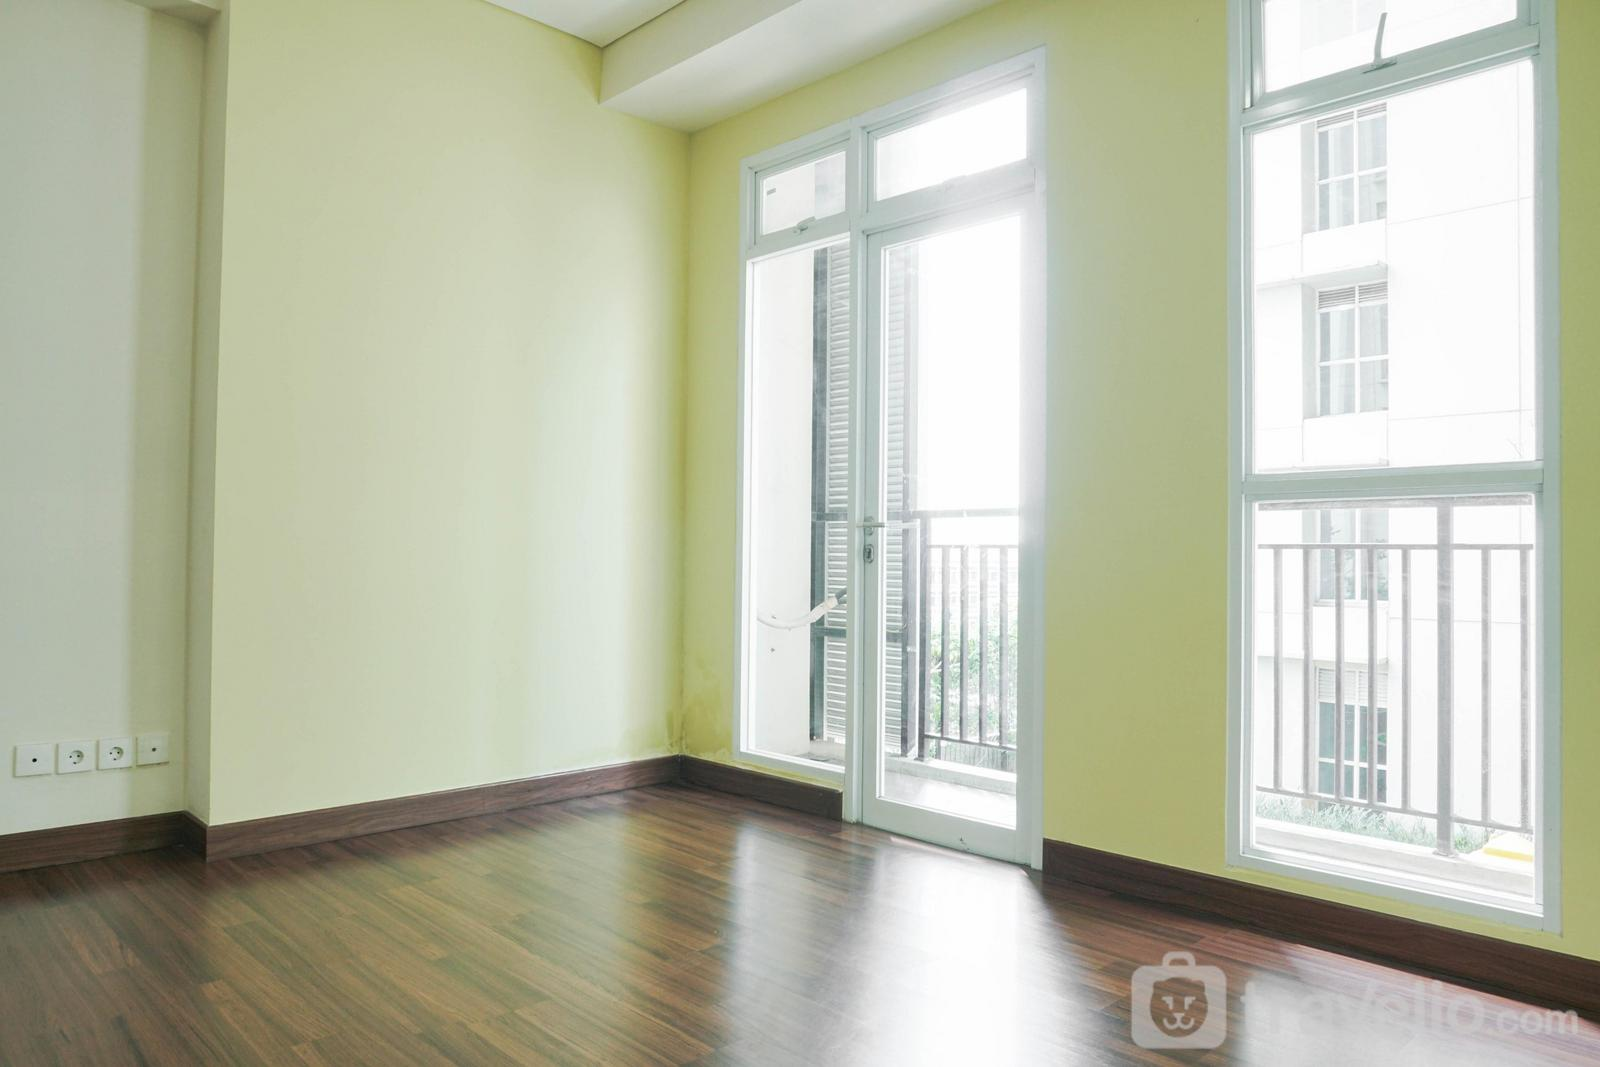 Apartemen Puri Orchard - Unfurnished Studio at 2nd Floor Puri Orchard Apartment By Travelio